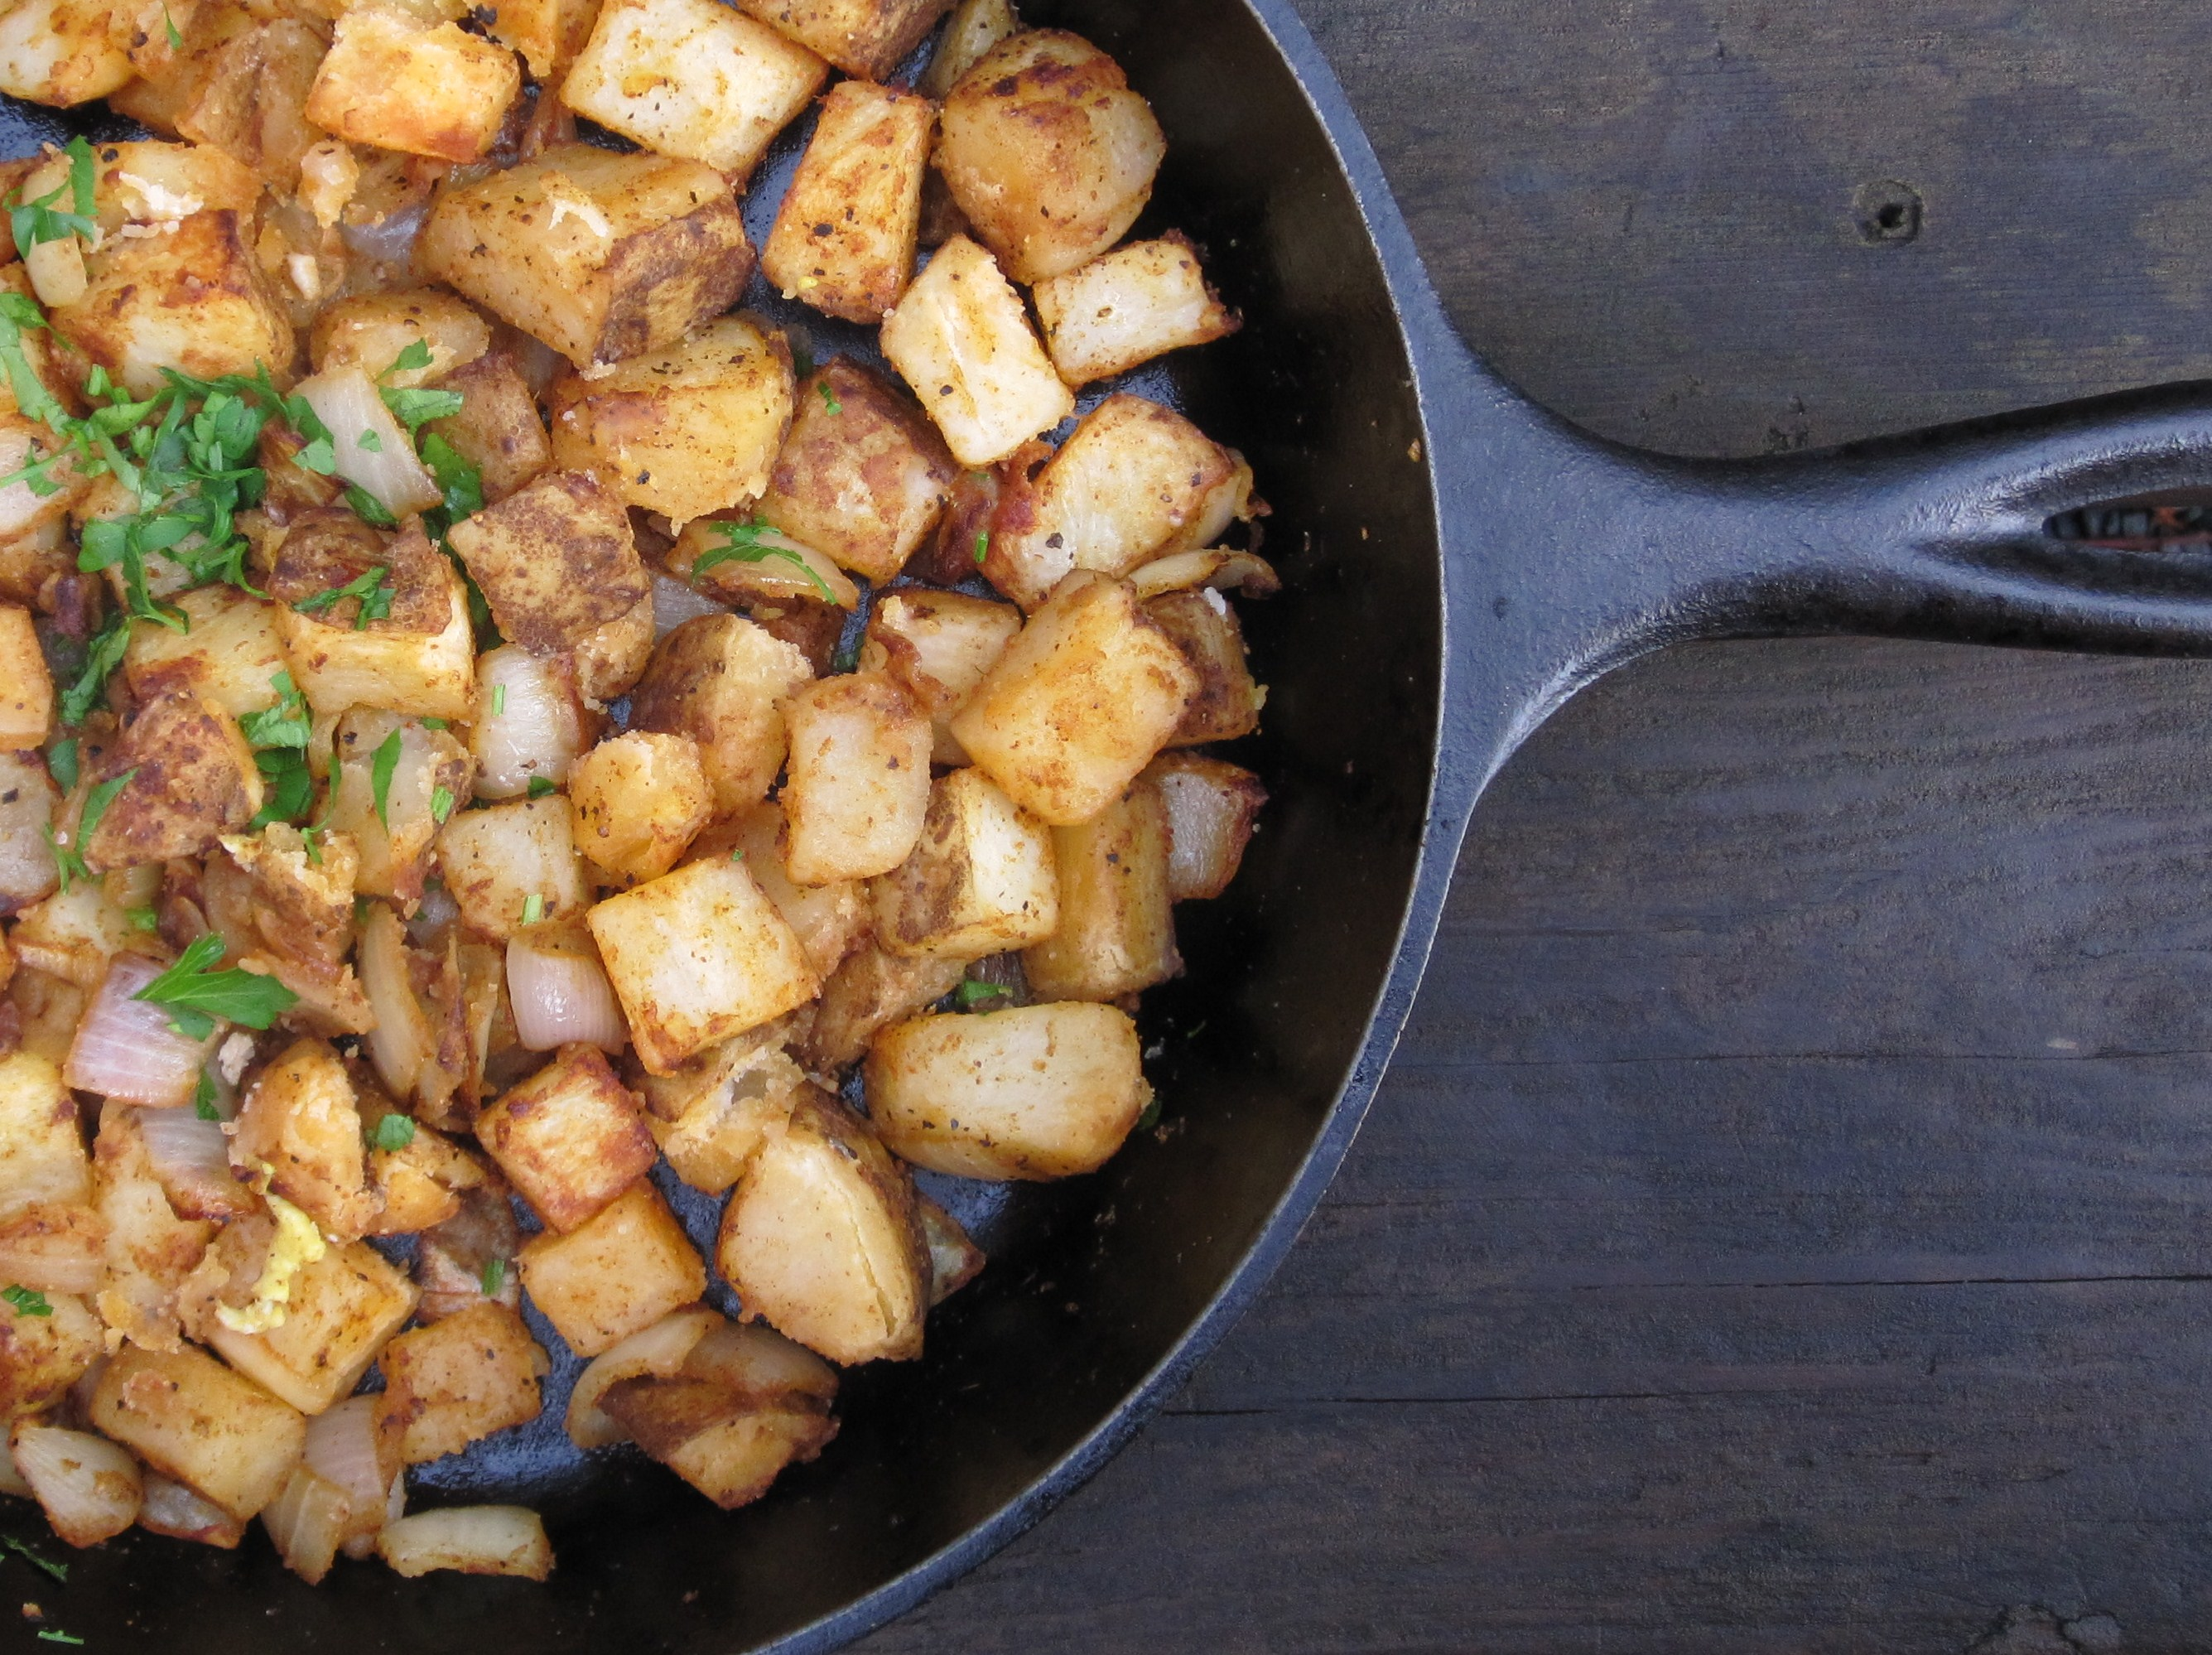 ... morning home fries recipe spicy home fries the home fries for two